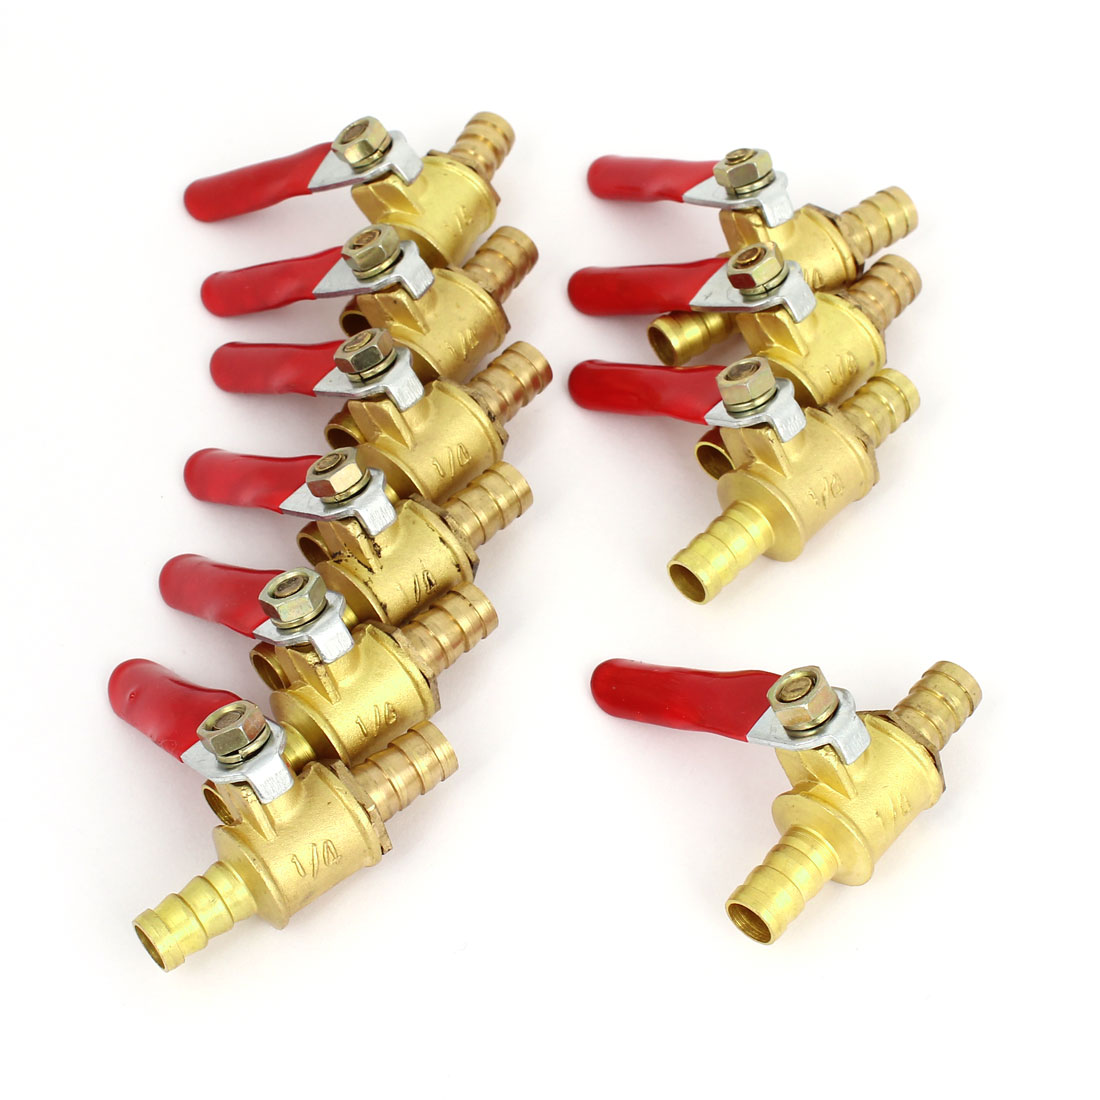 10PCS 8mm Dia Dual Hose Barb Pressure Valve Switch Gold Tone Red for Air Compressor